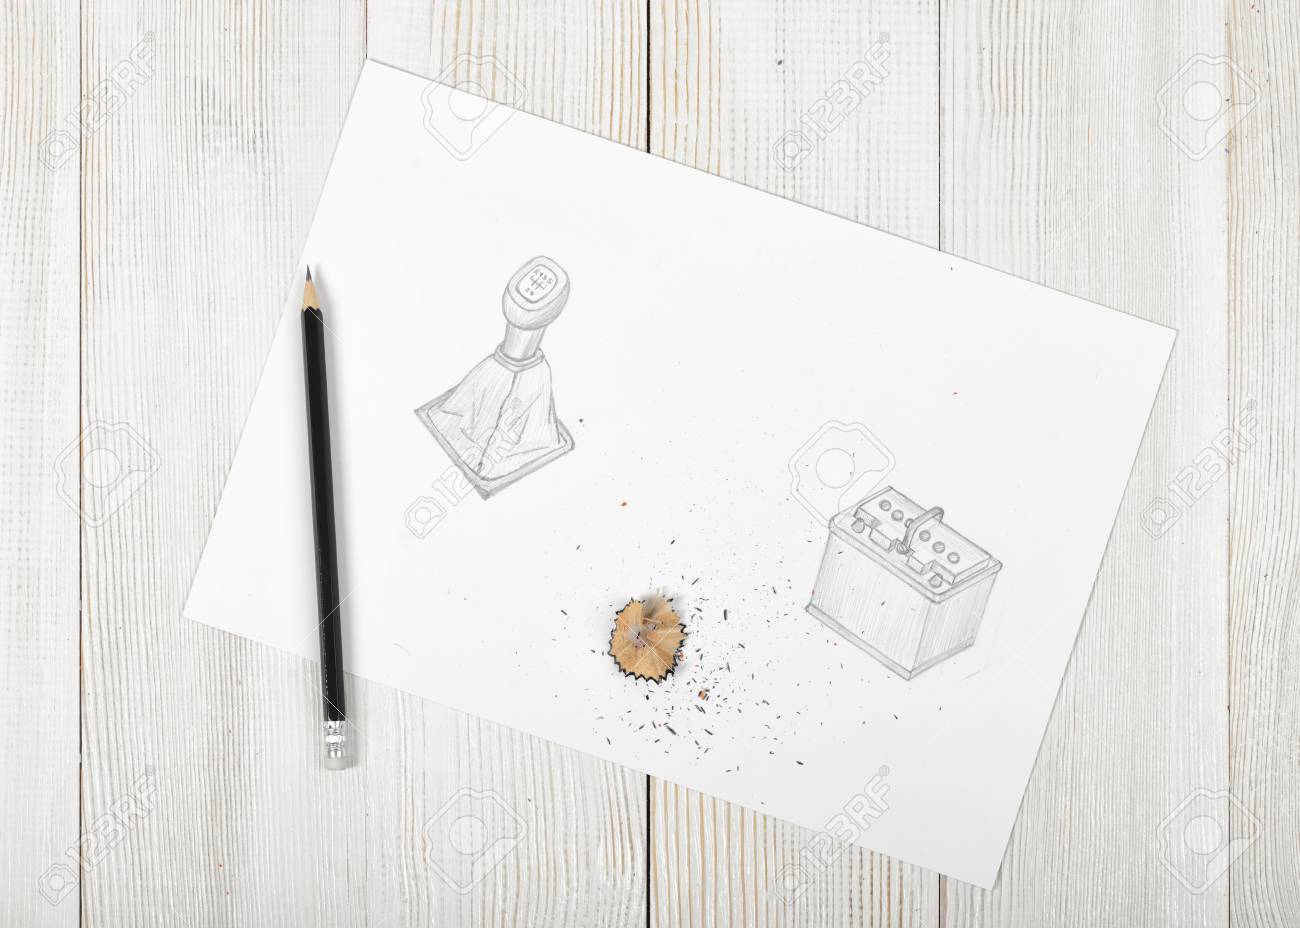 Work place of artist with soft black pencil and shavings sketch